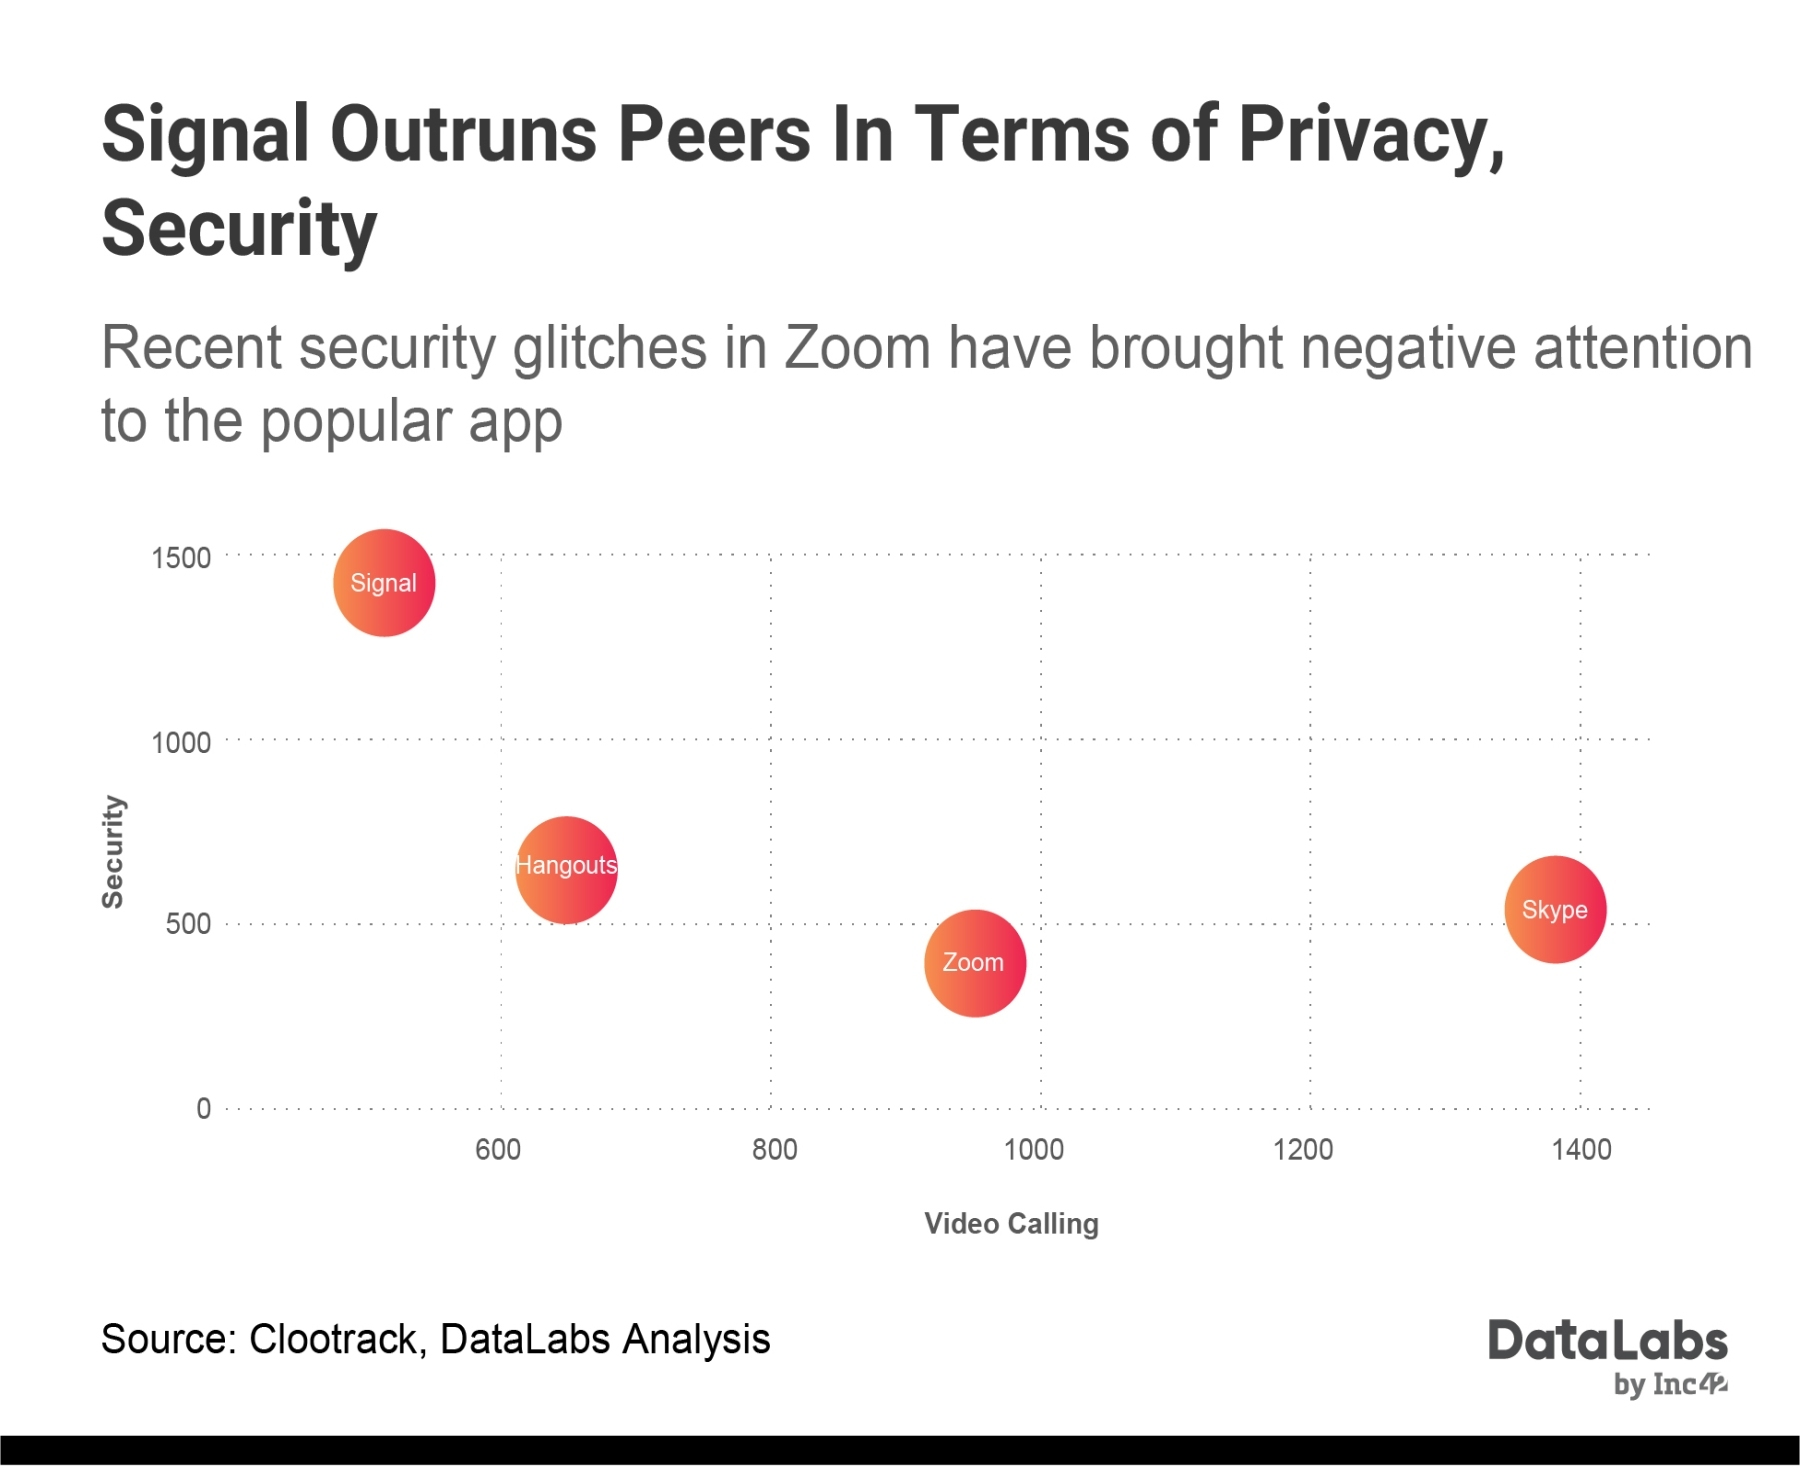 Recent security glitches in Zoom have brought negative attention to the popular app